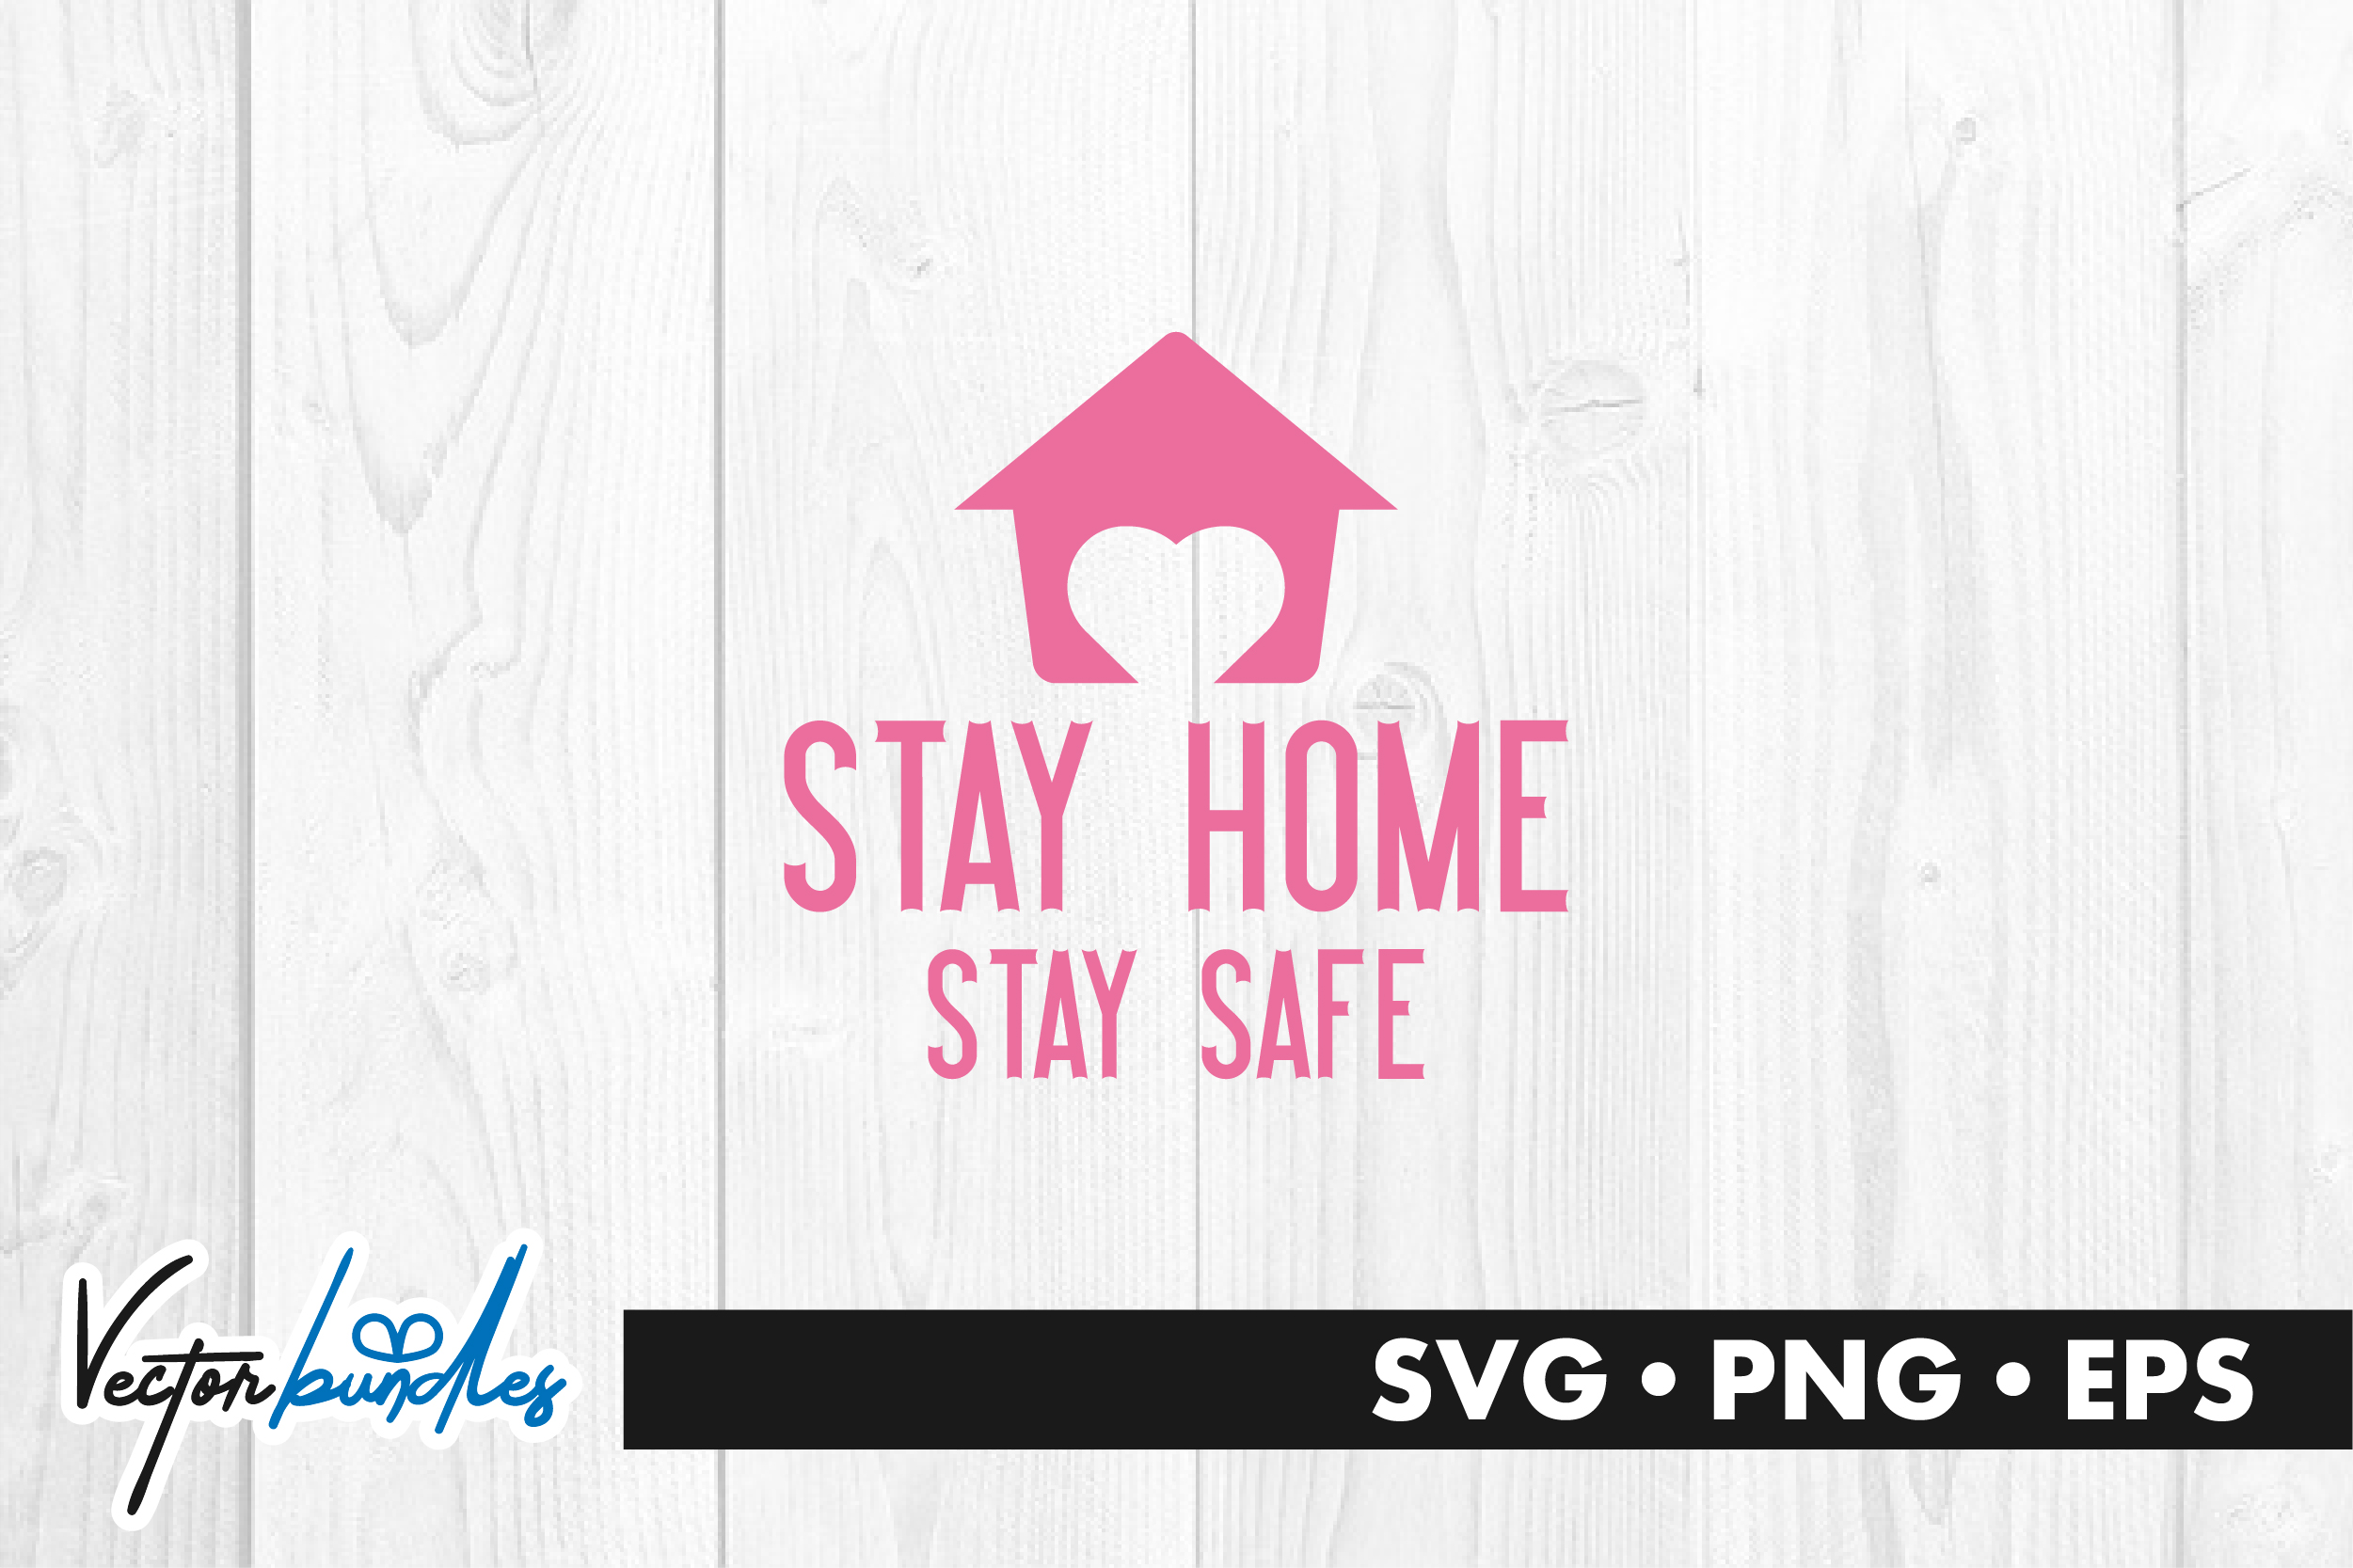 Download Free Stay Home Stay Safe Quote Graphic By Vectorbundles Creative for Cricut Explore, Silhouette and other cutting machines.